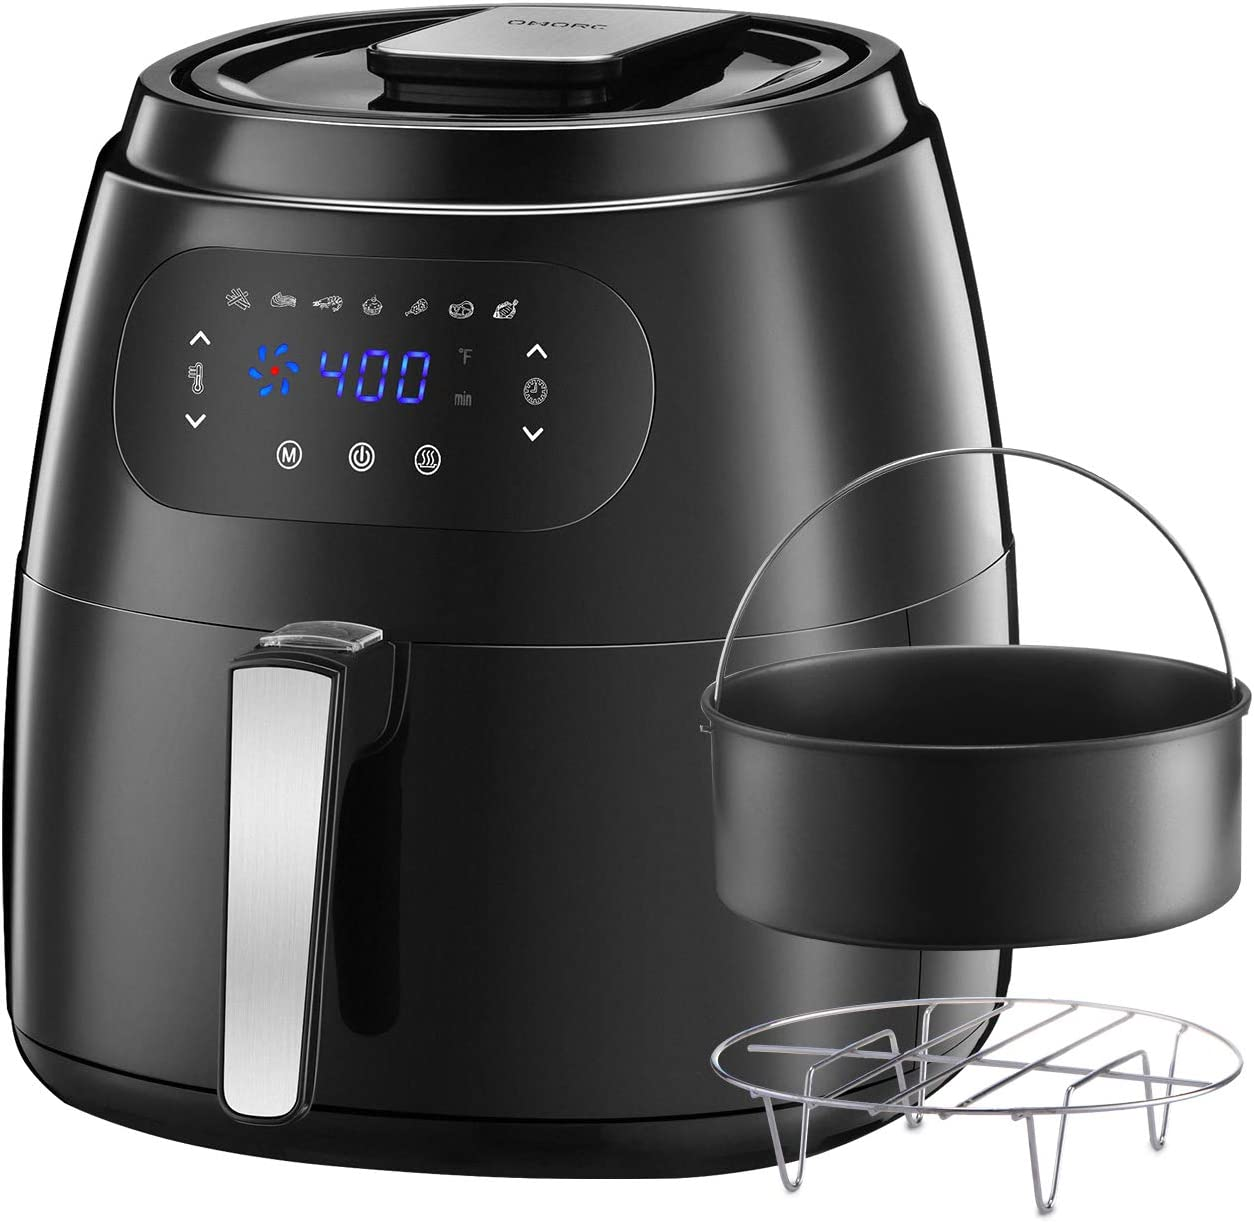 OMORC 7.6 Quart Air Fryer